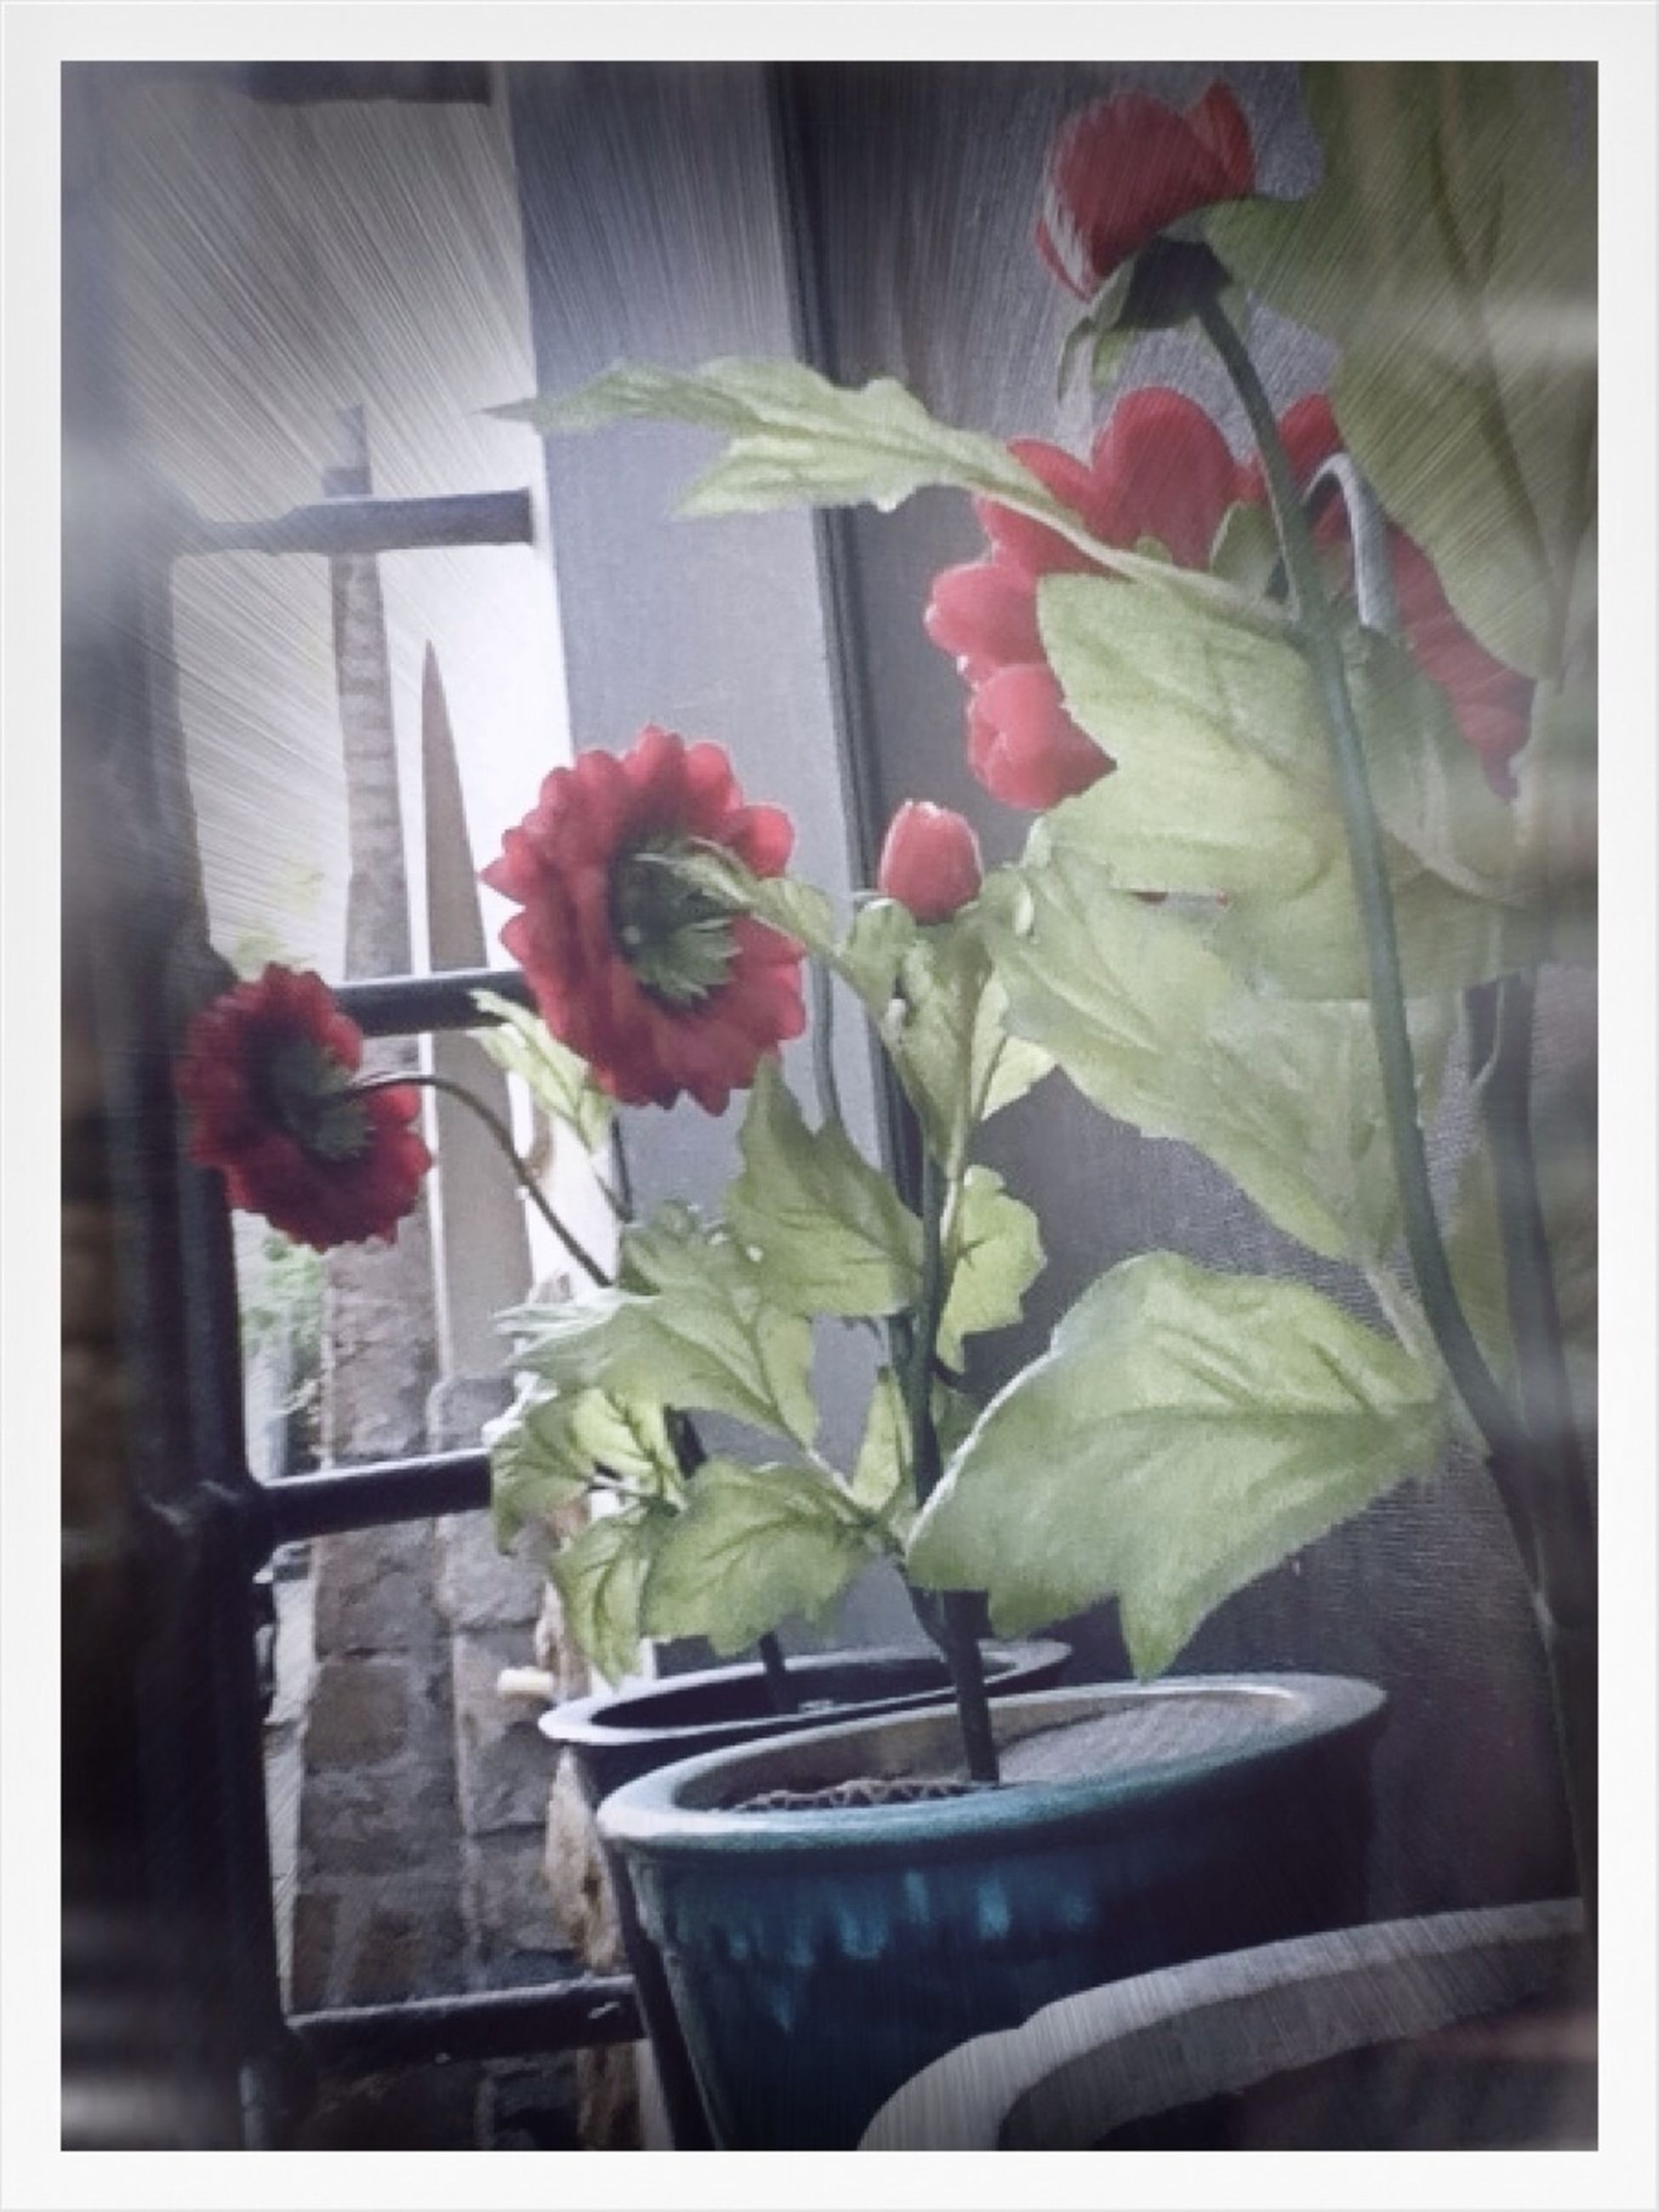 flower, plant, growth, potted plant, freshness, transfer print, window, indoors, fragility, window sill, vase, leaf, auto post production filter, petal, glass - material, close-up, nature, flower pot, built structure, flower head